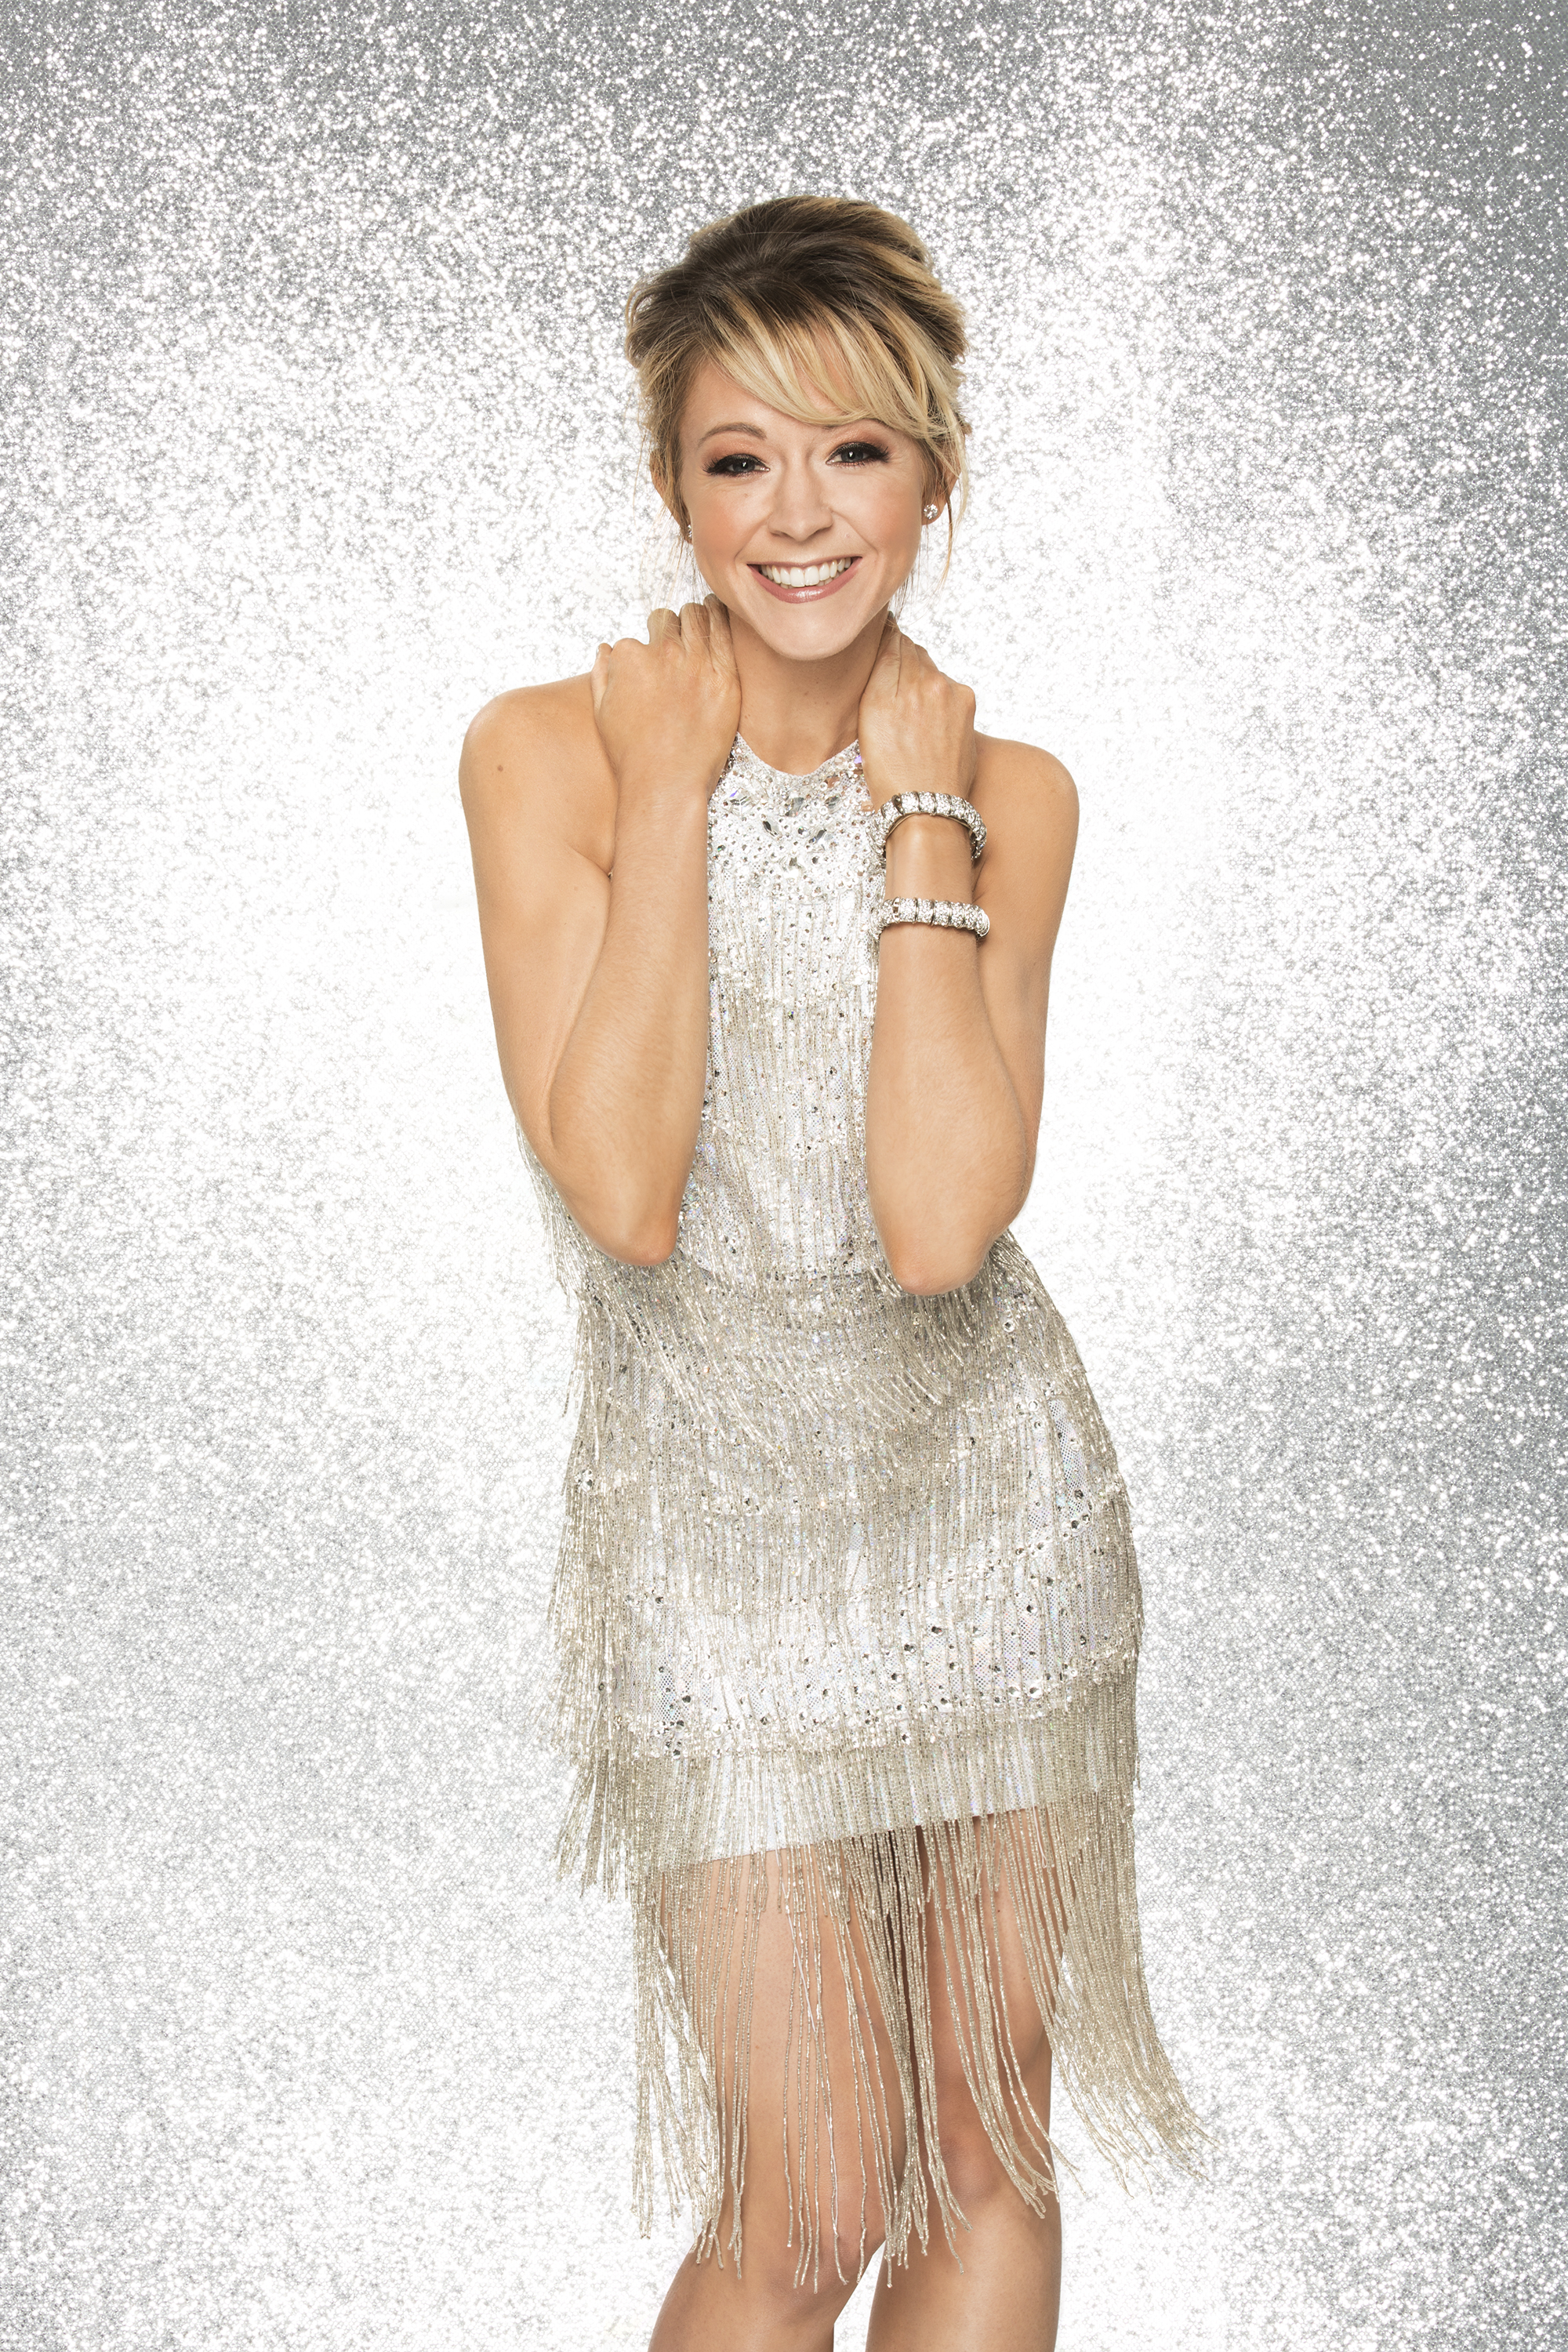 lindsey stirling dancing with the stars wiki fandom powered by wikia